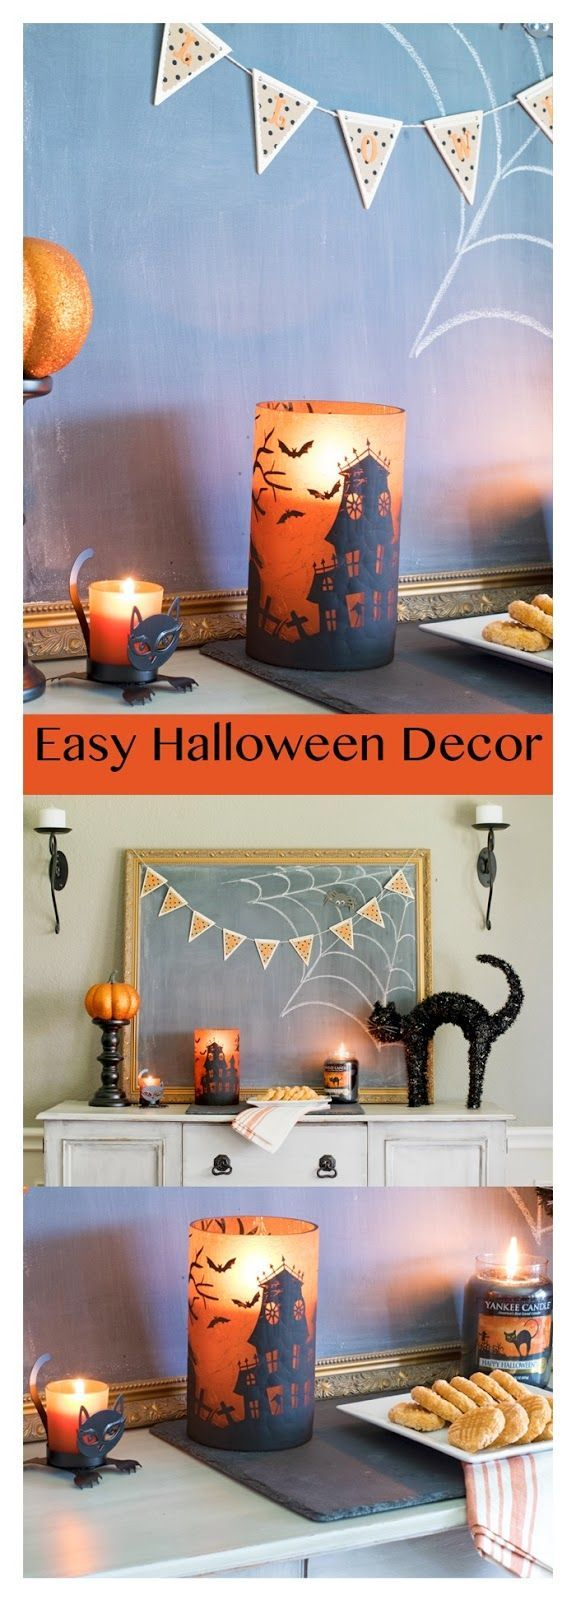 Easy Halloween Decor! Looking for a fast and inexpensive way to style a mantel, buffet or other small space? See how Yankee Candles and a few other thrifted items can make a fun and spooky spot!